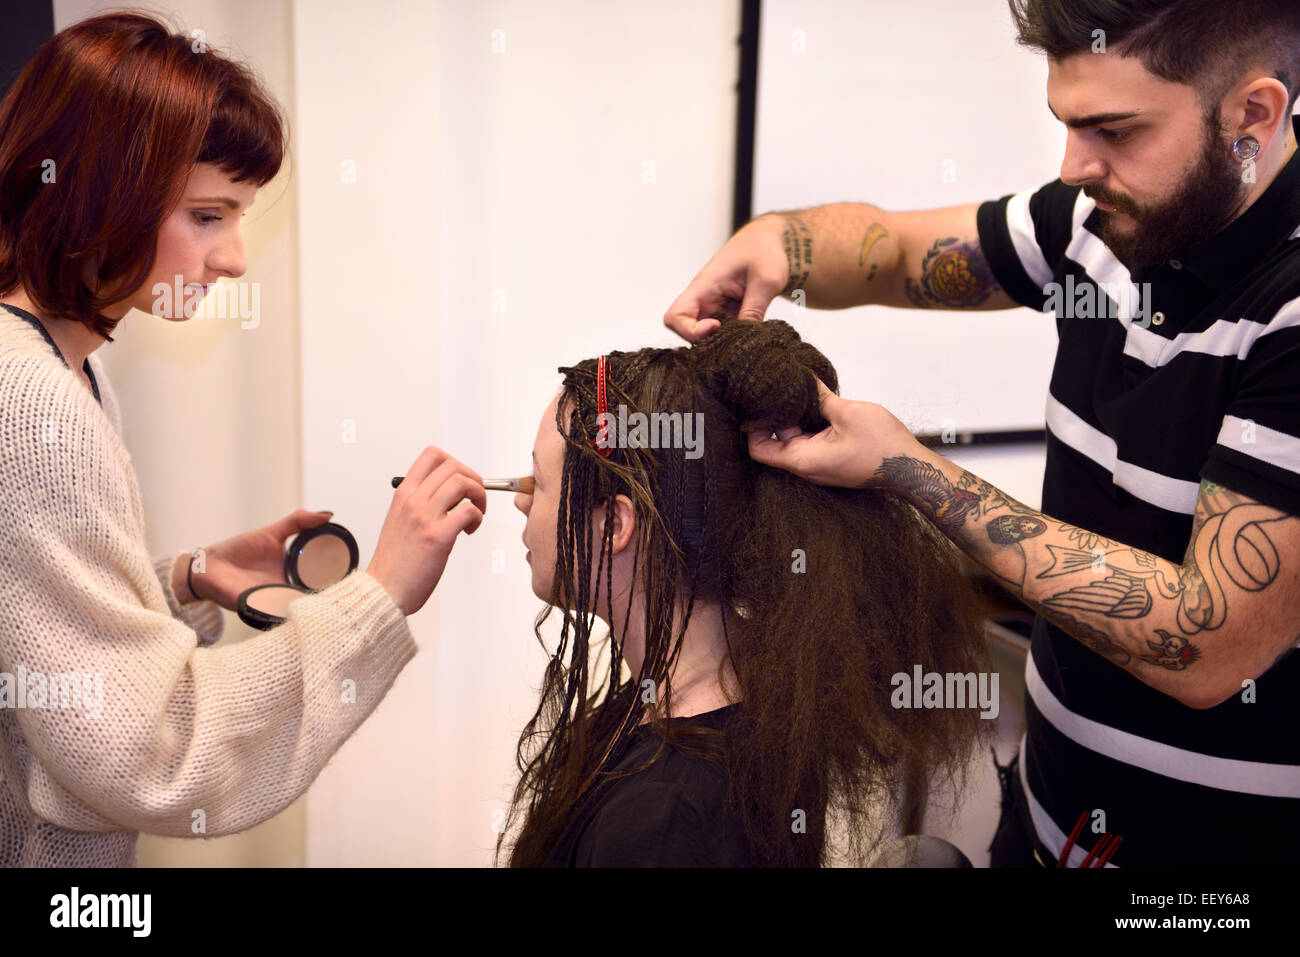 Student makeup artist and hairstylist working on braided hair with doughnut on a model - Stock Image